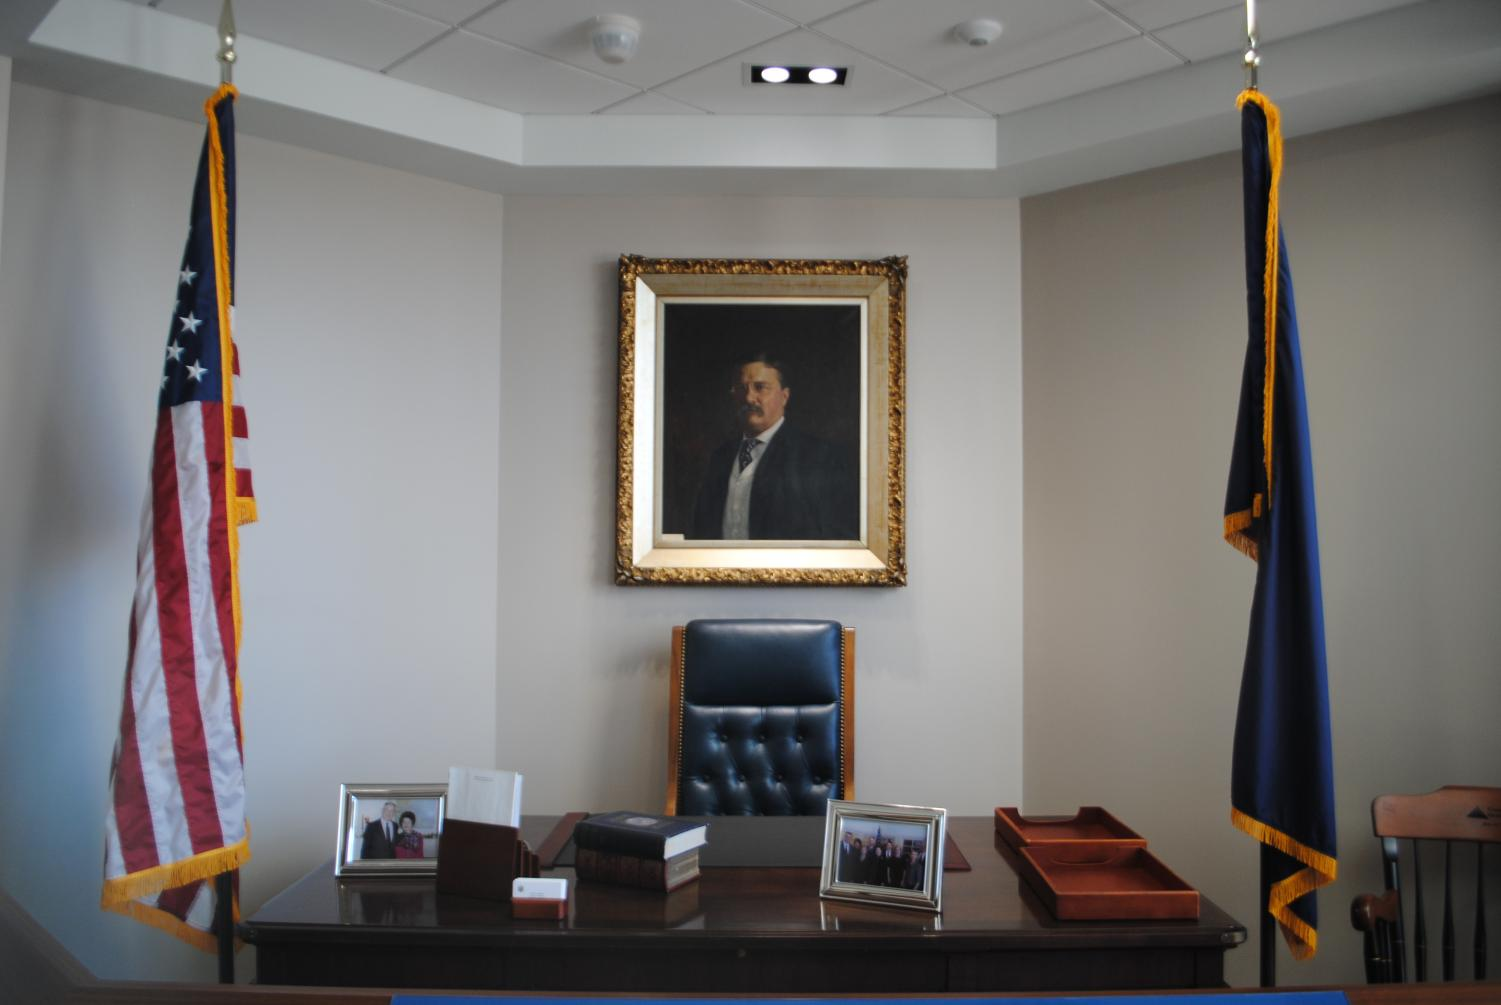 No descriptions accompany many of the artifacts on display at the Murtha Center, including a Teddy Roosevelt portrait hanging above Murtha's desk.